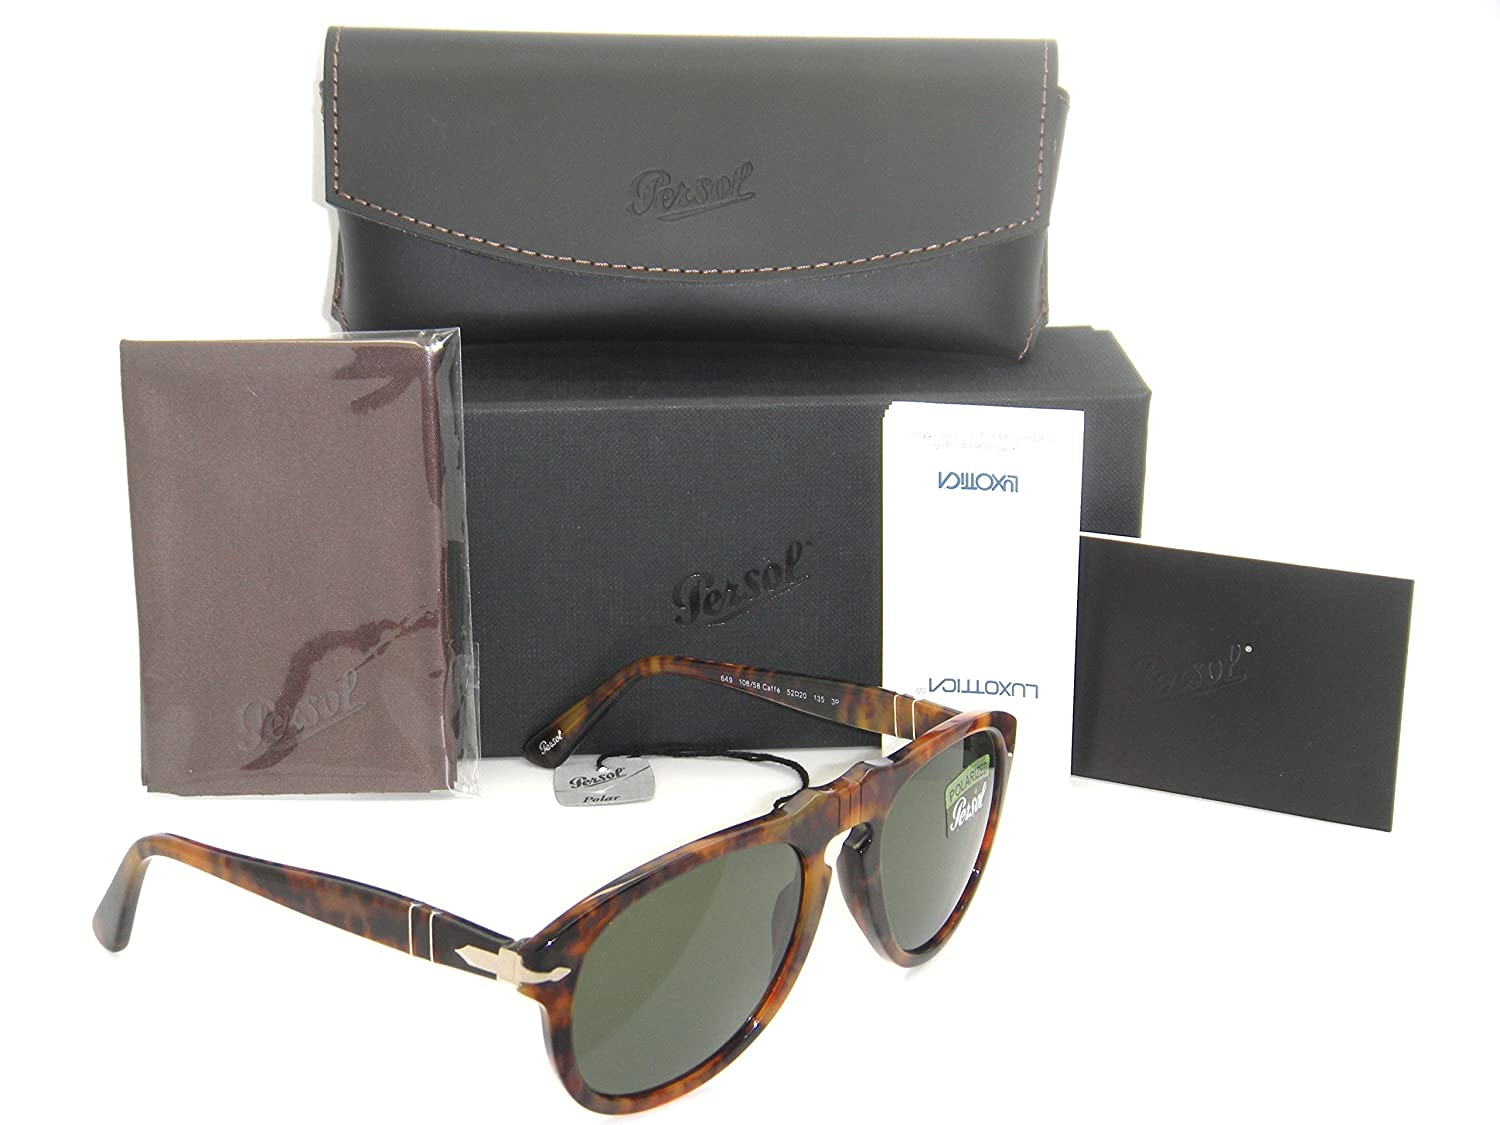 96f2cedb95a New Authentic Persol Caffe Havana Frame   Green Polarized Lenses PO 0649 108  58 52mm  Amazon.co.uk  Clothing